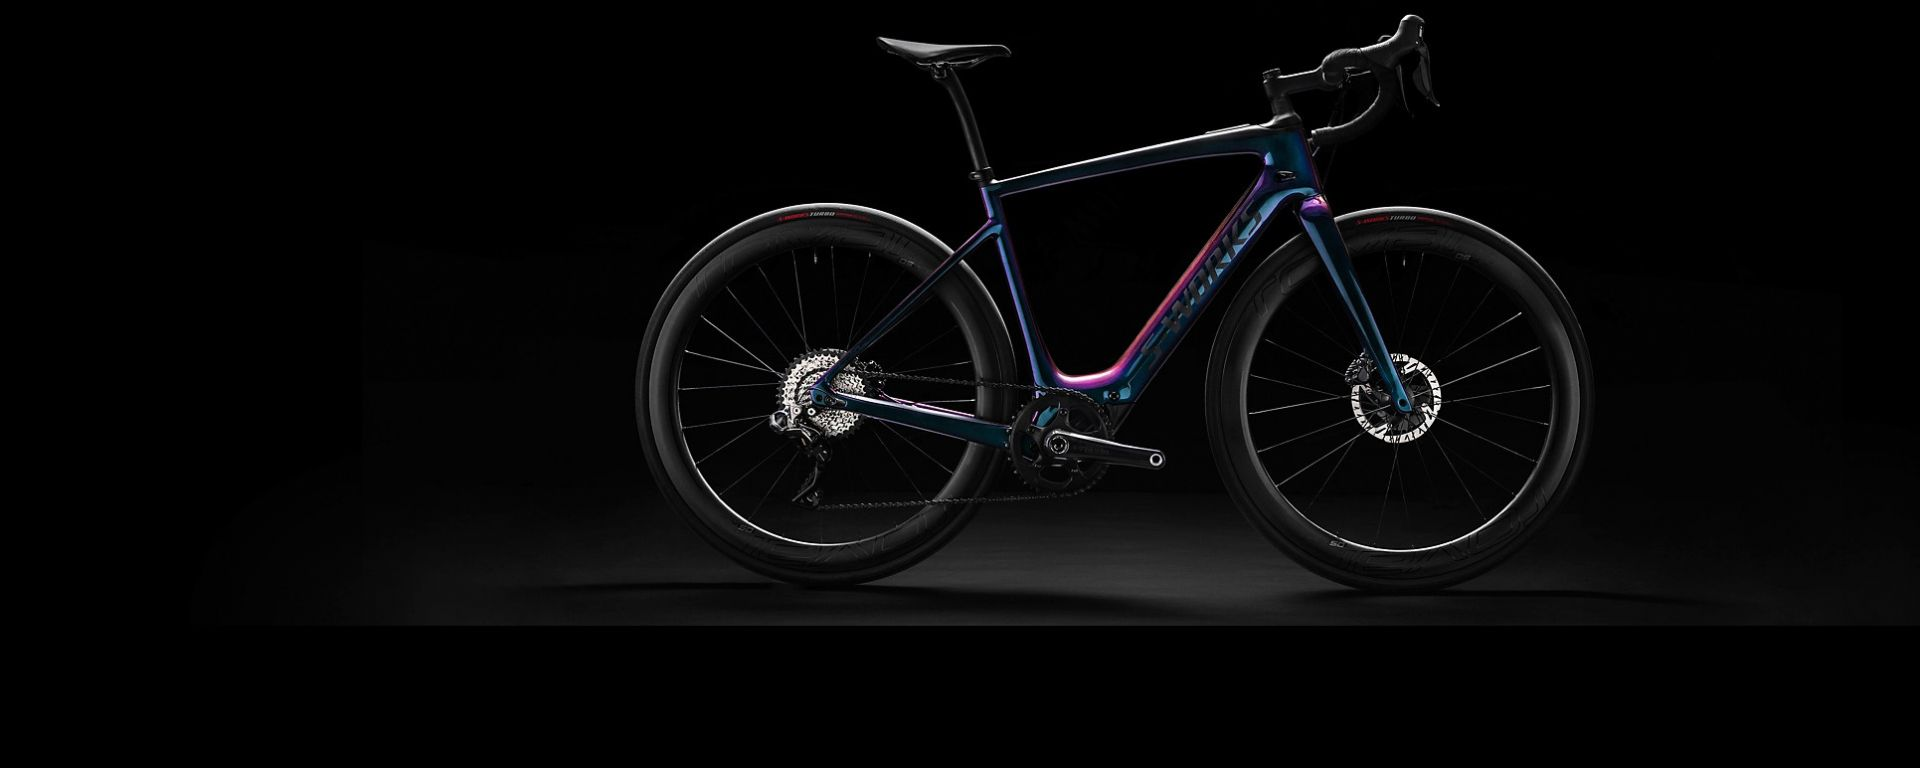 Specialized S-Works Turbo Creo SL: vale quanto una piccola utilitaria